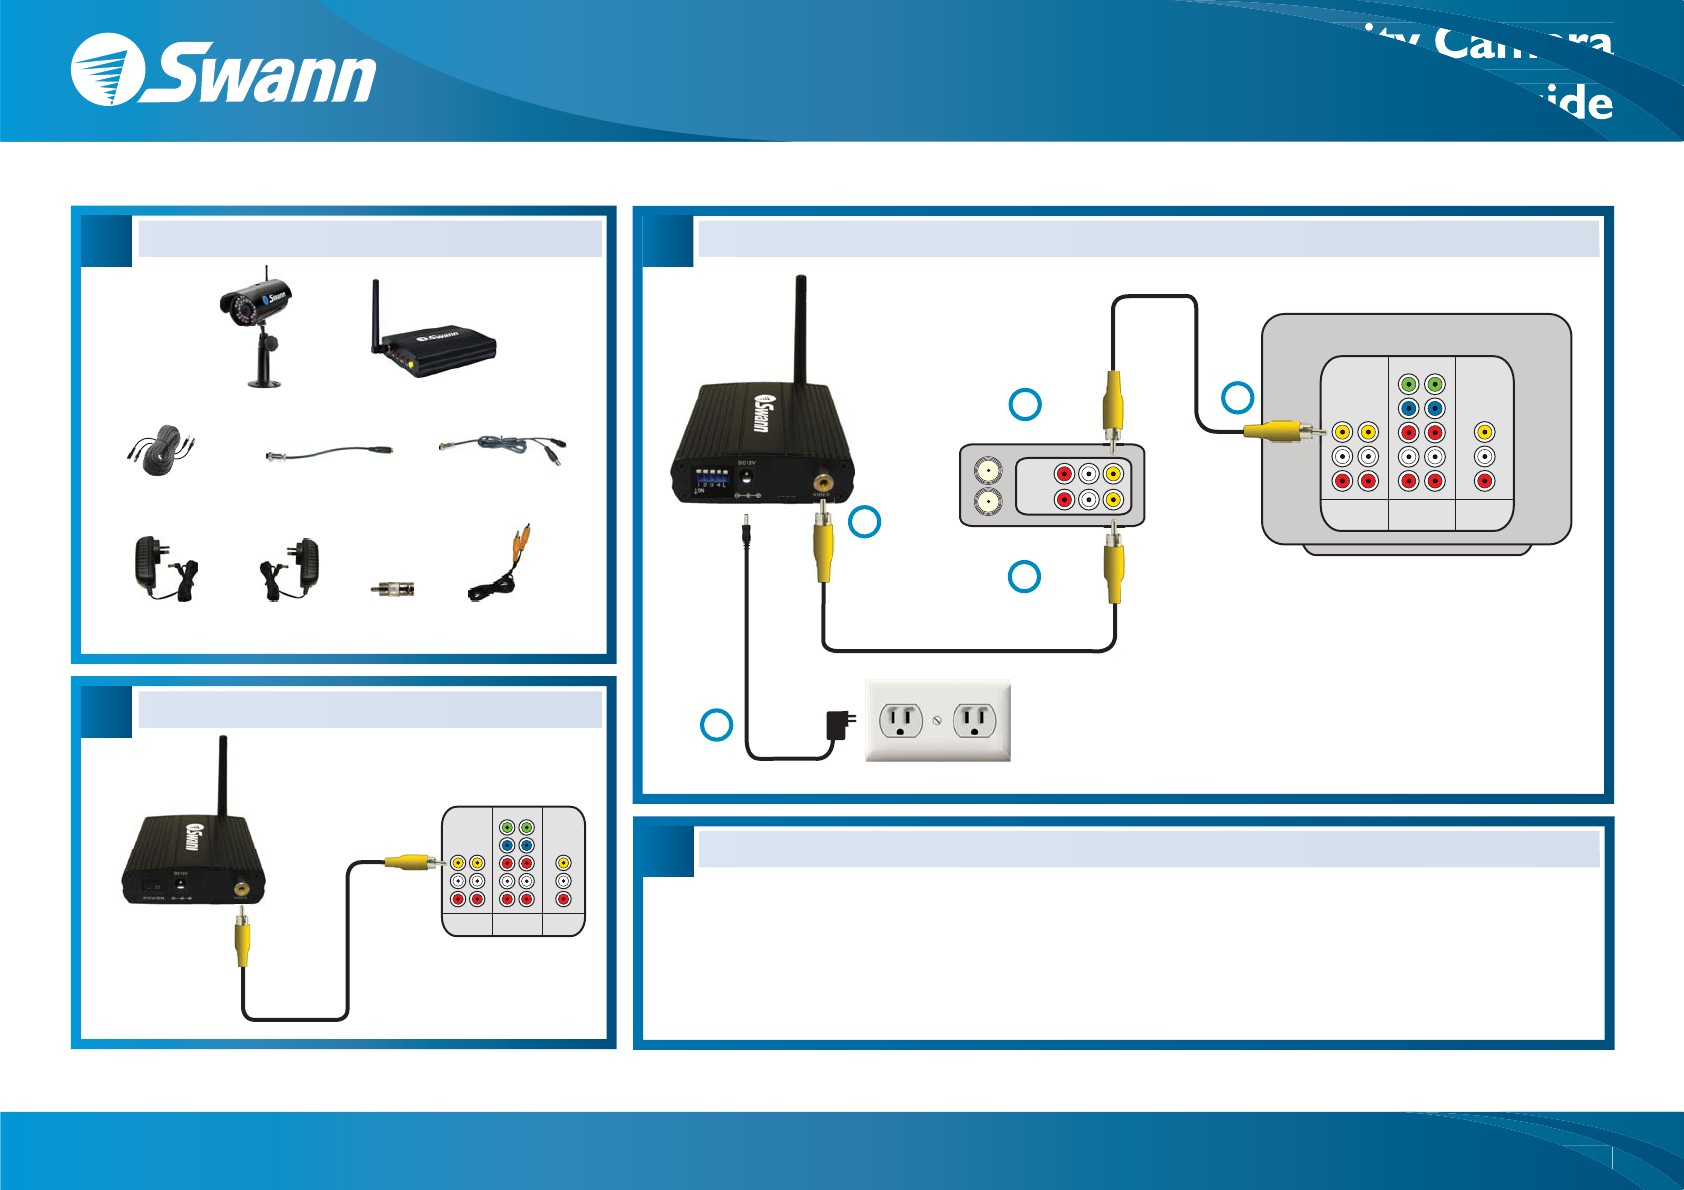 swann security camera wiring diagram Collection-Unique Q See Camera Installation Wires Motif Electrical and Wiring 3-h